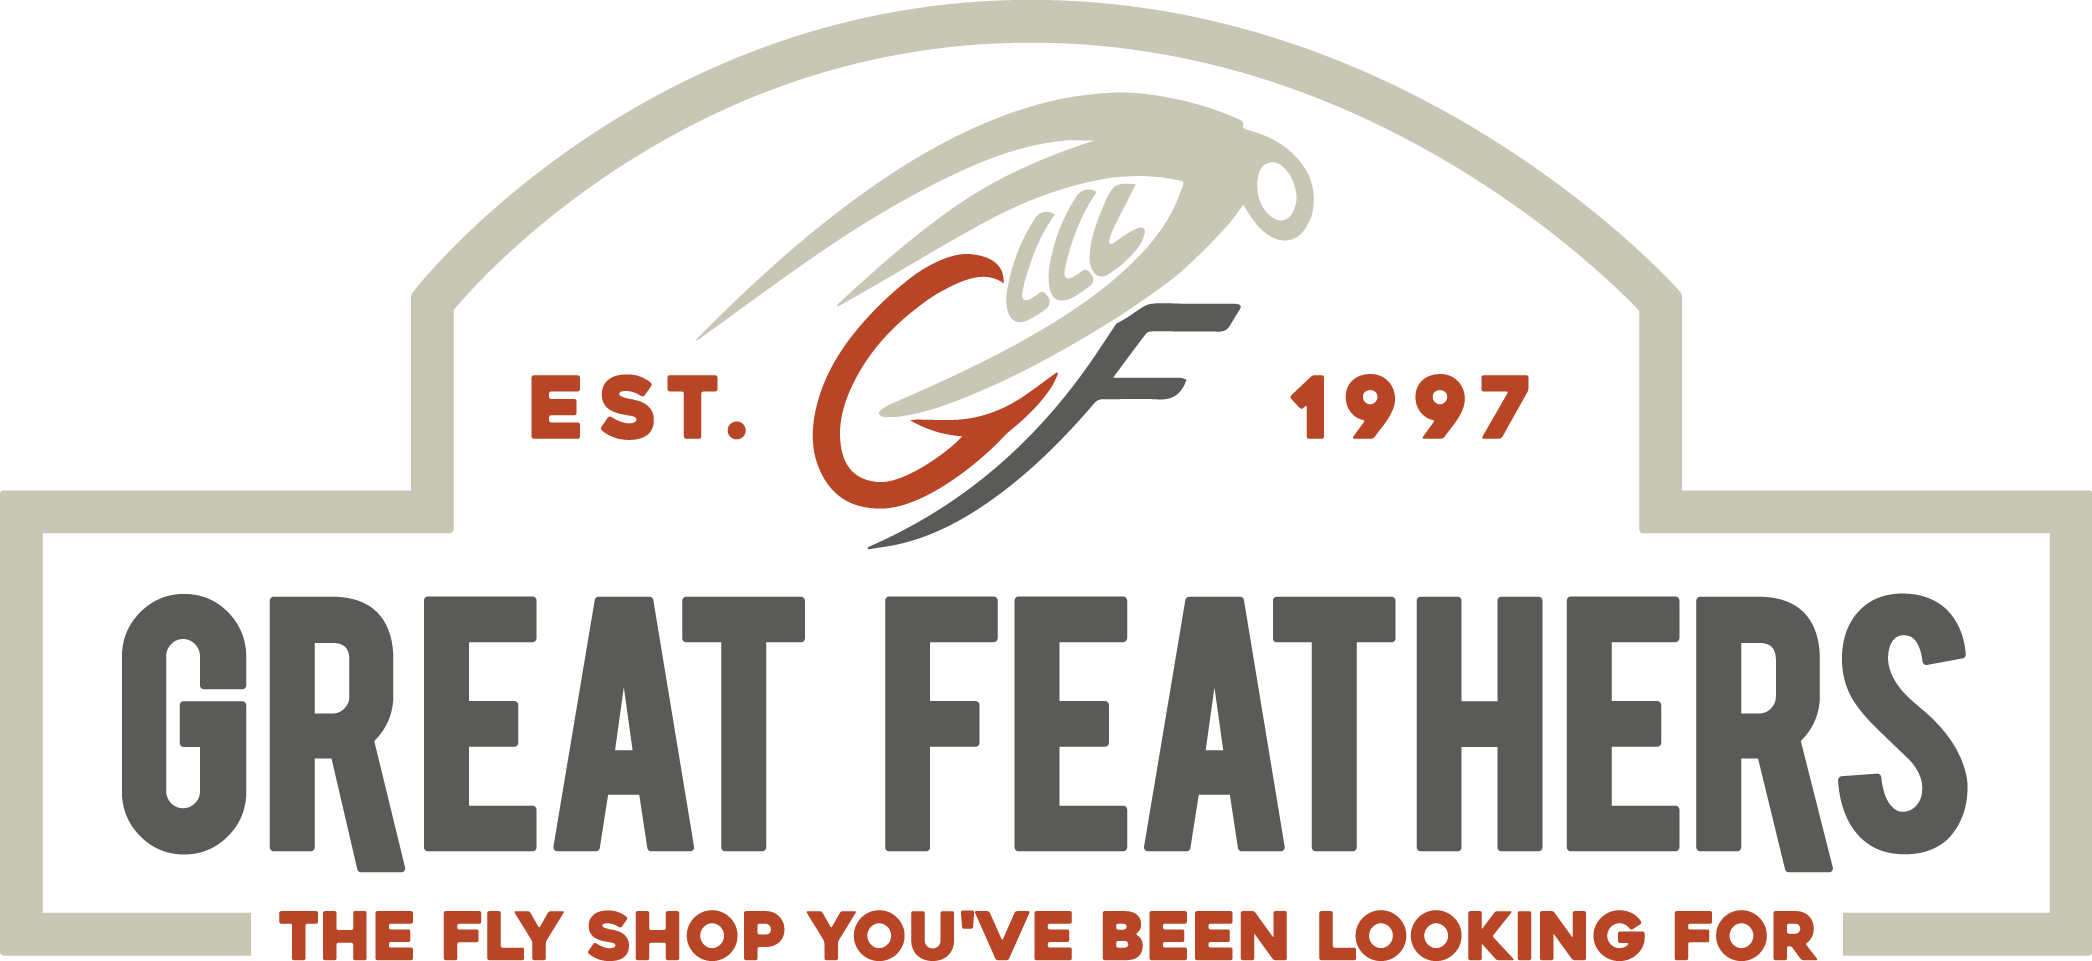 Great Feathers Fly Shop – Fly Tying Materials, supplies & Feathers